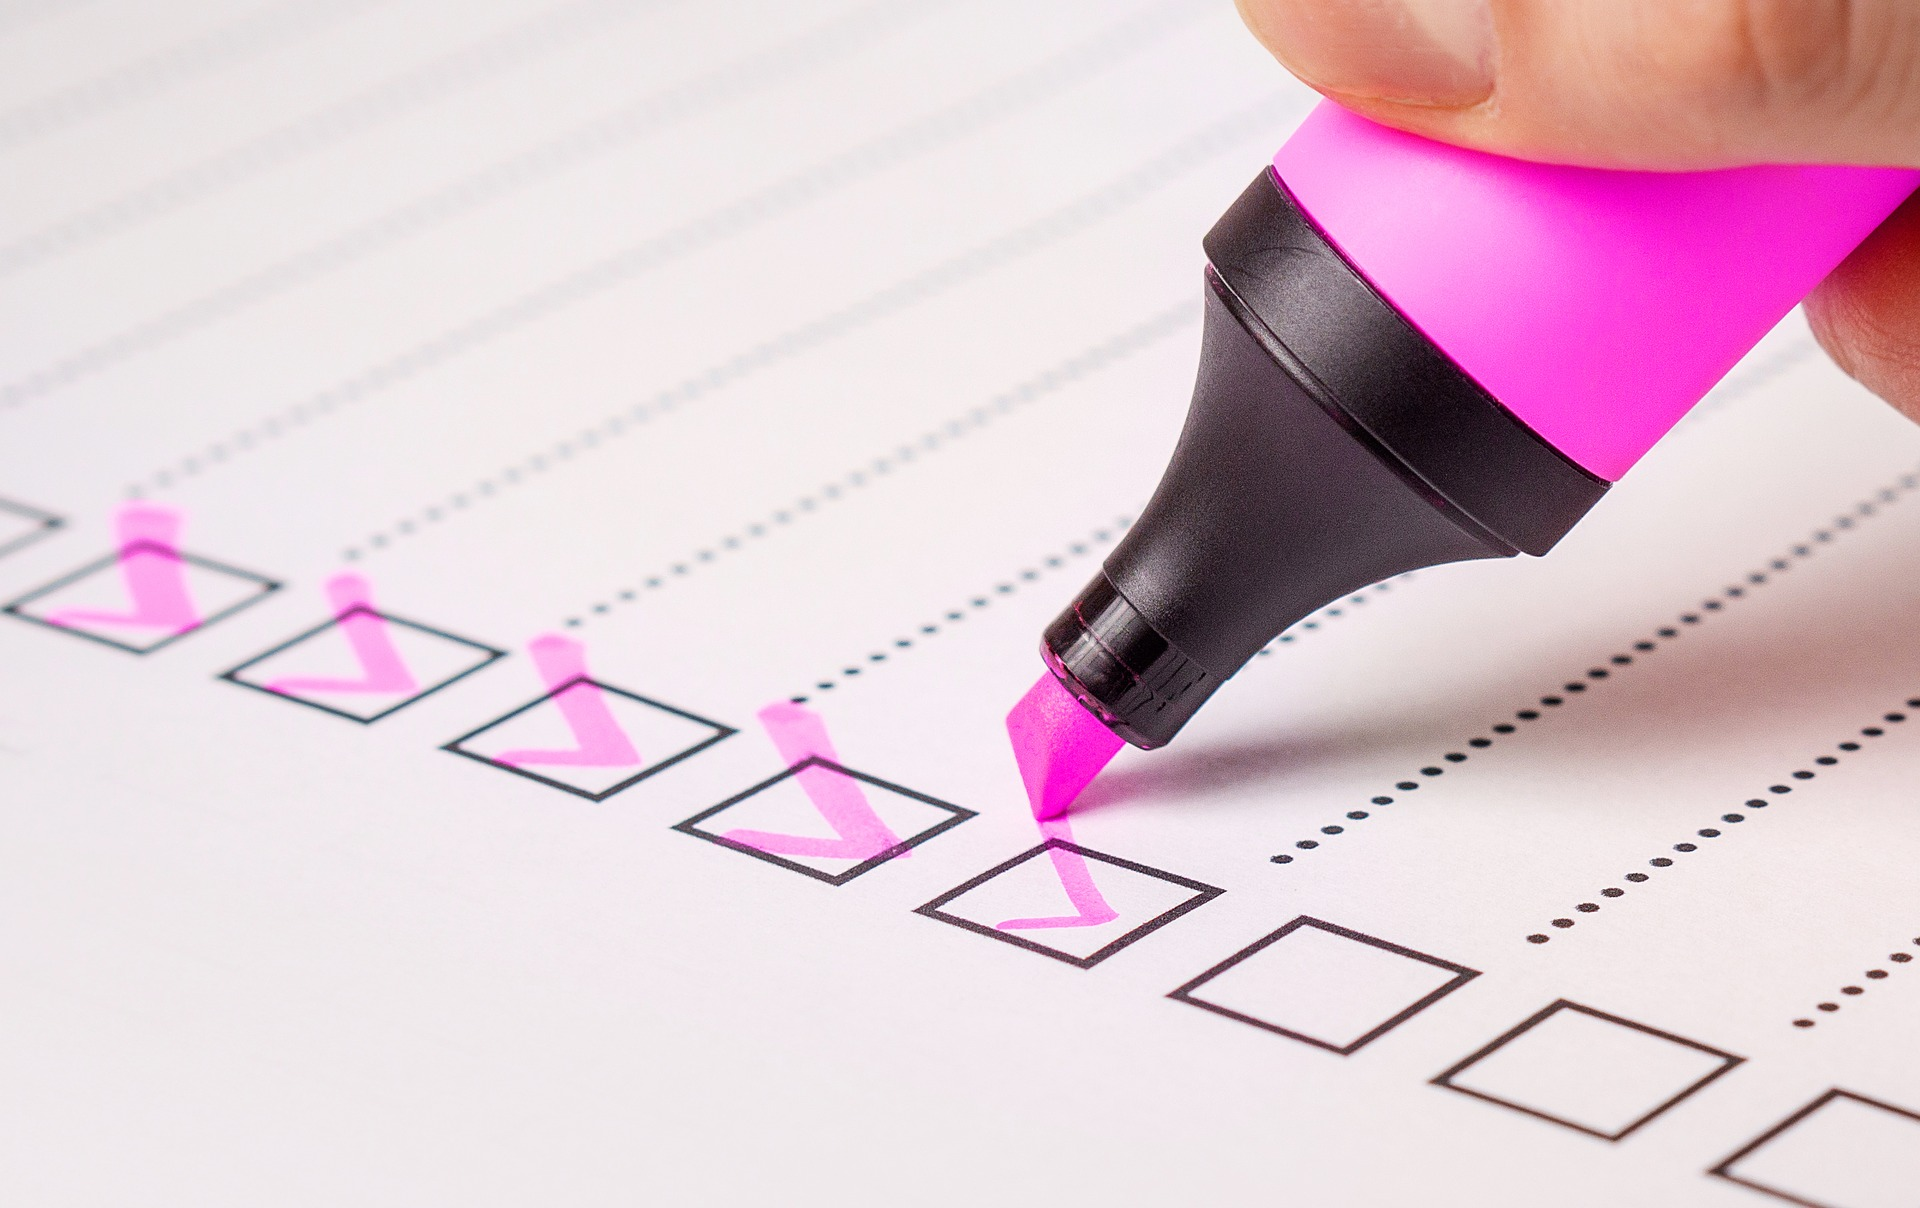 Checklist with pink marker